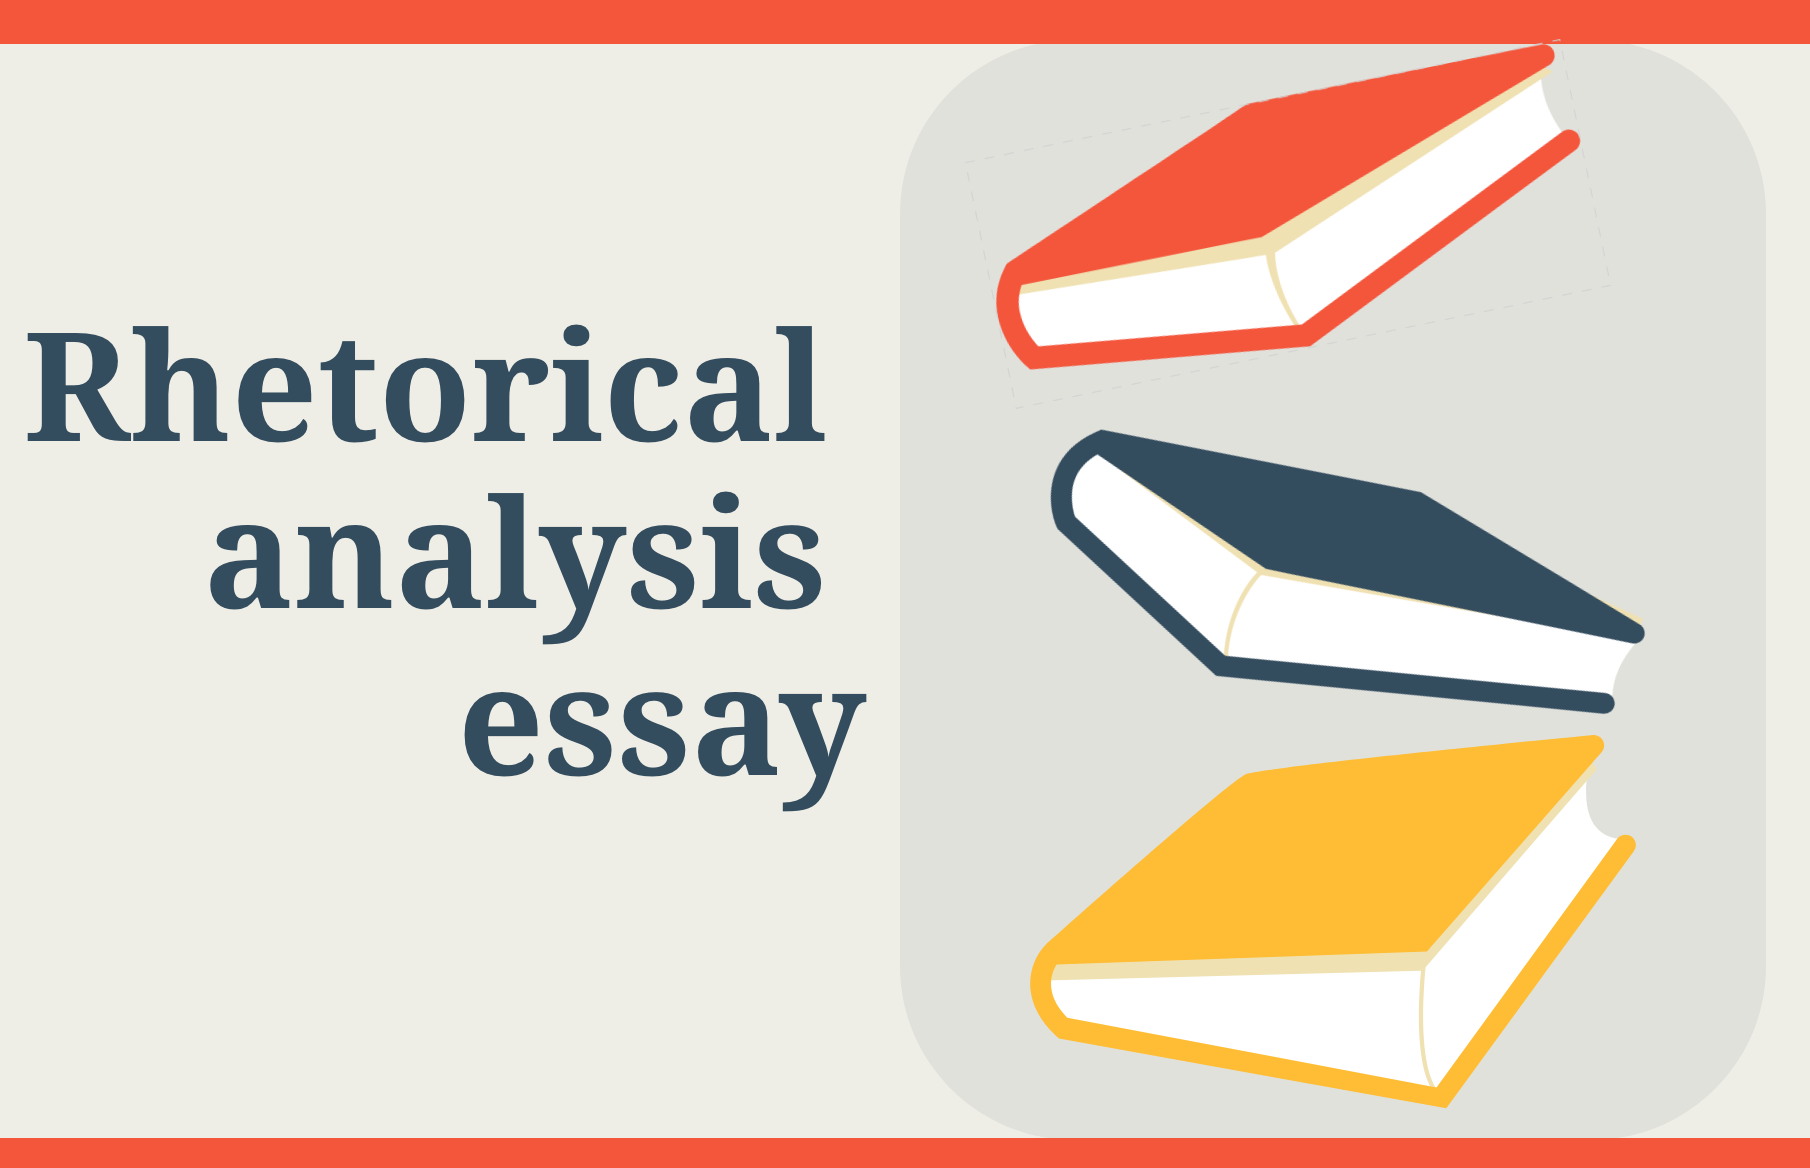 Best rhetorical analysis essay writers services online cover letter for editorial internship